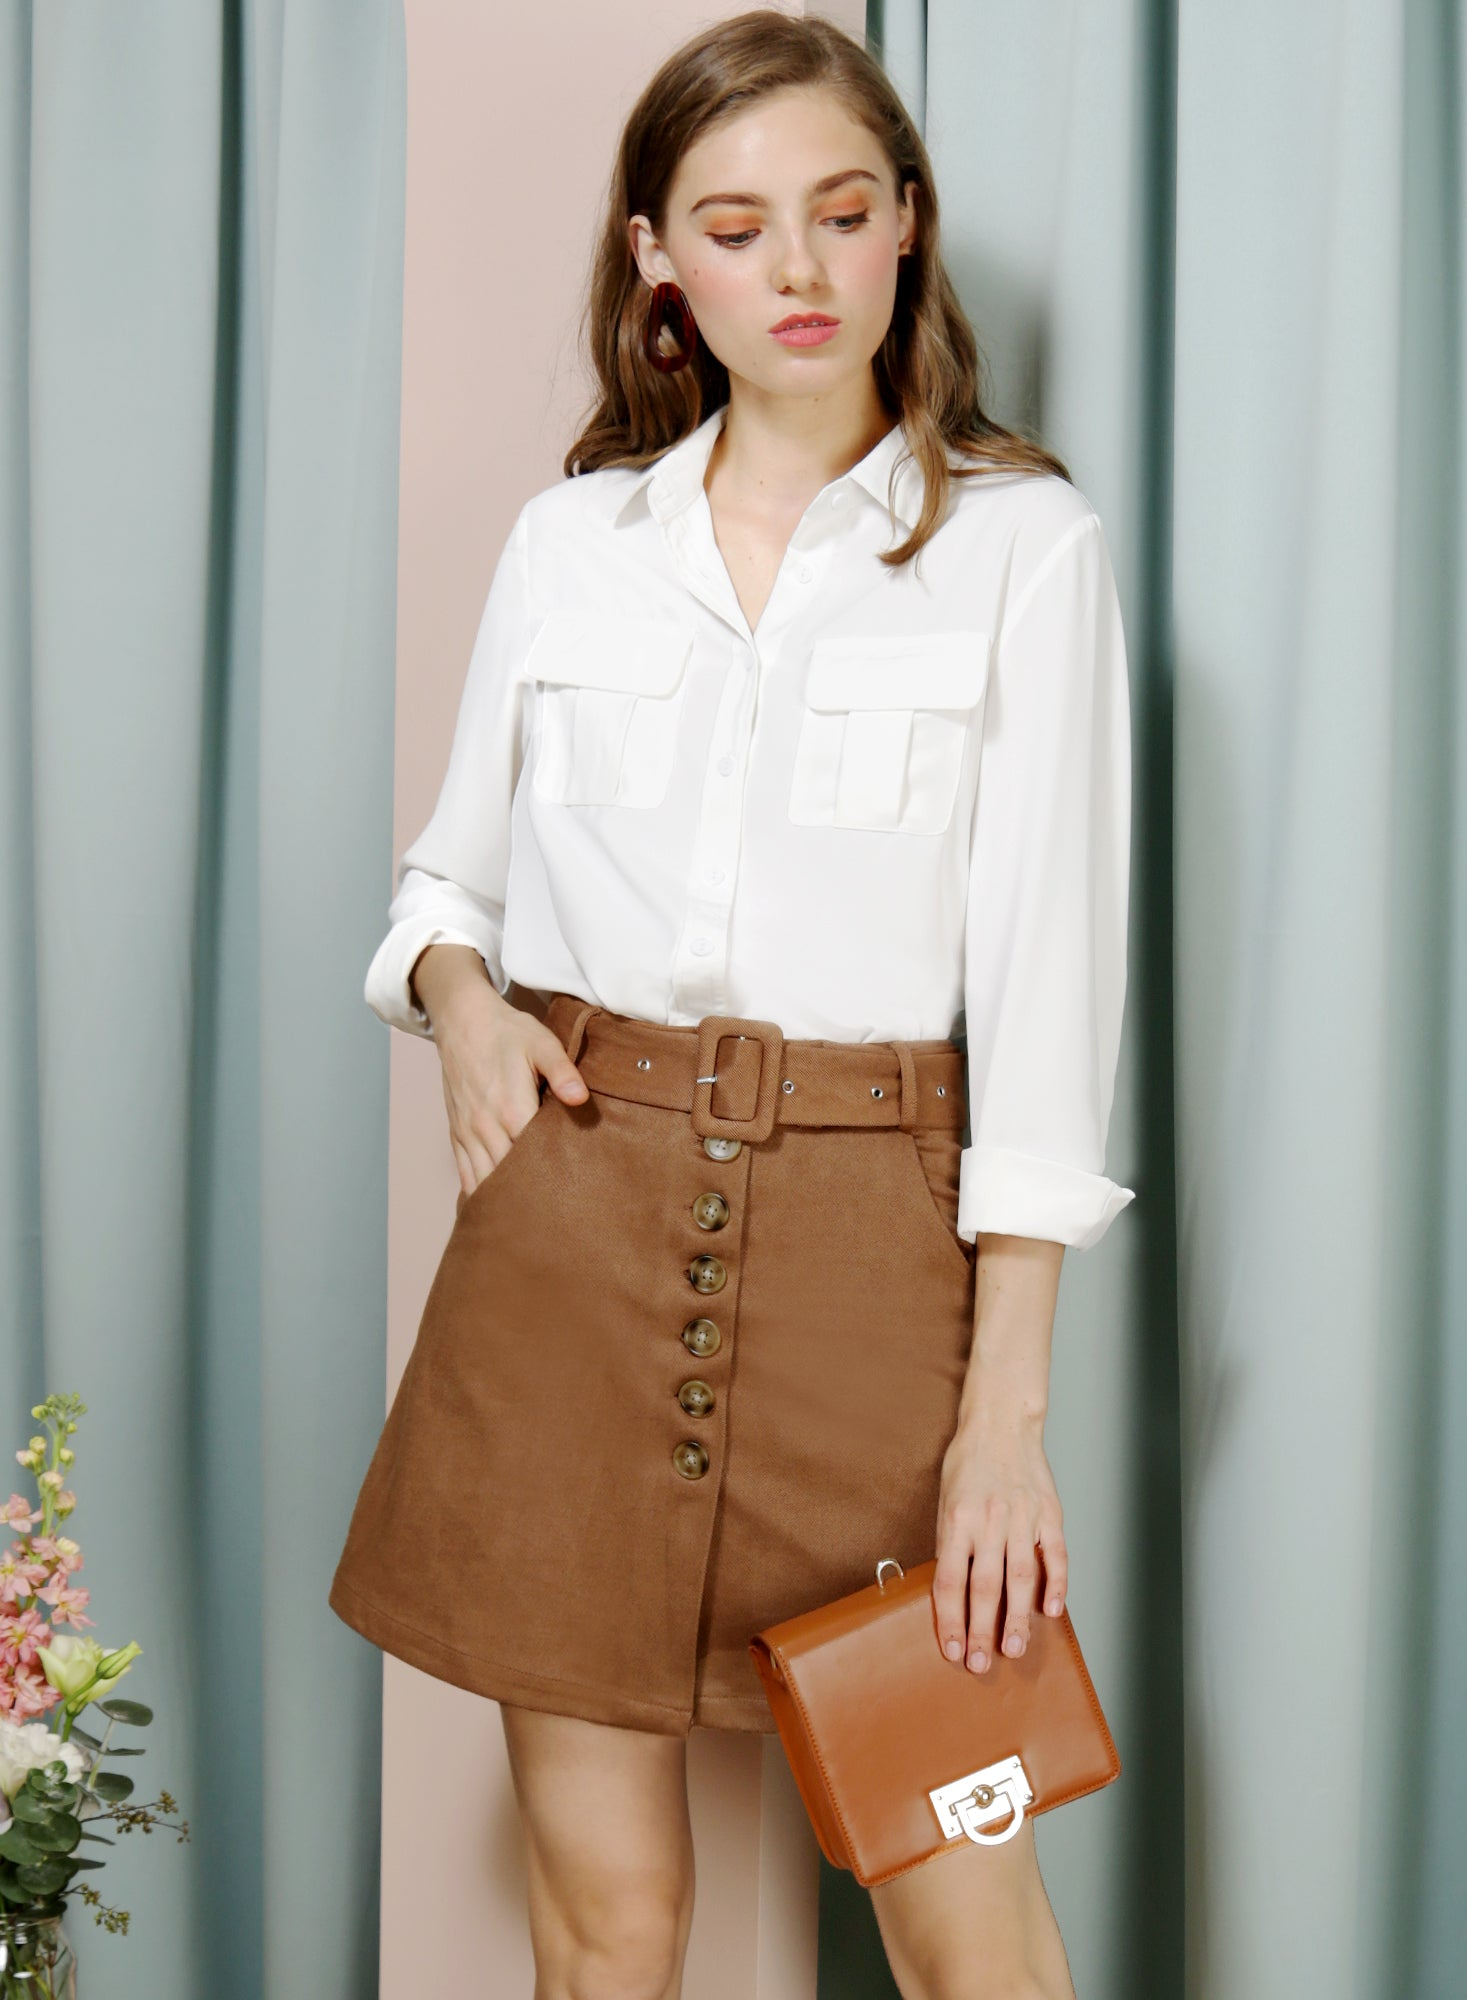 WAFT Double Pocket Shirt (White) at $ 36.00 only sold at And Well Dressed Online Fashion Store Singapore